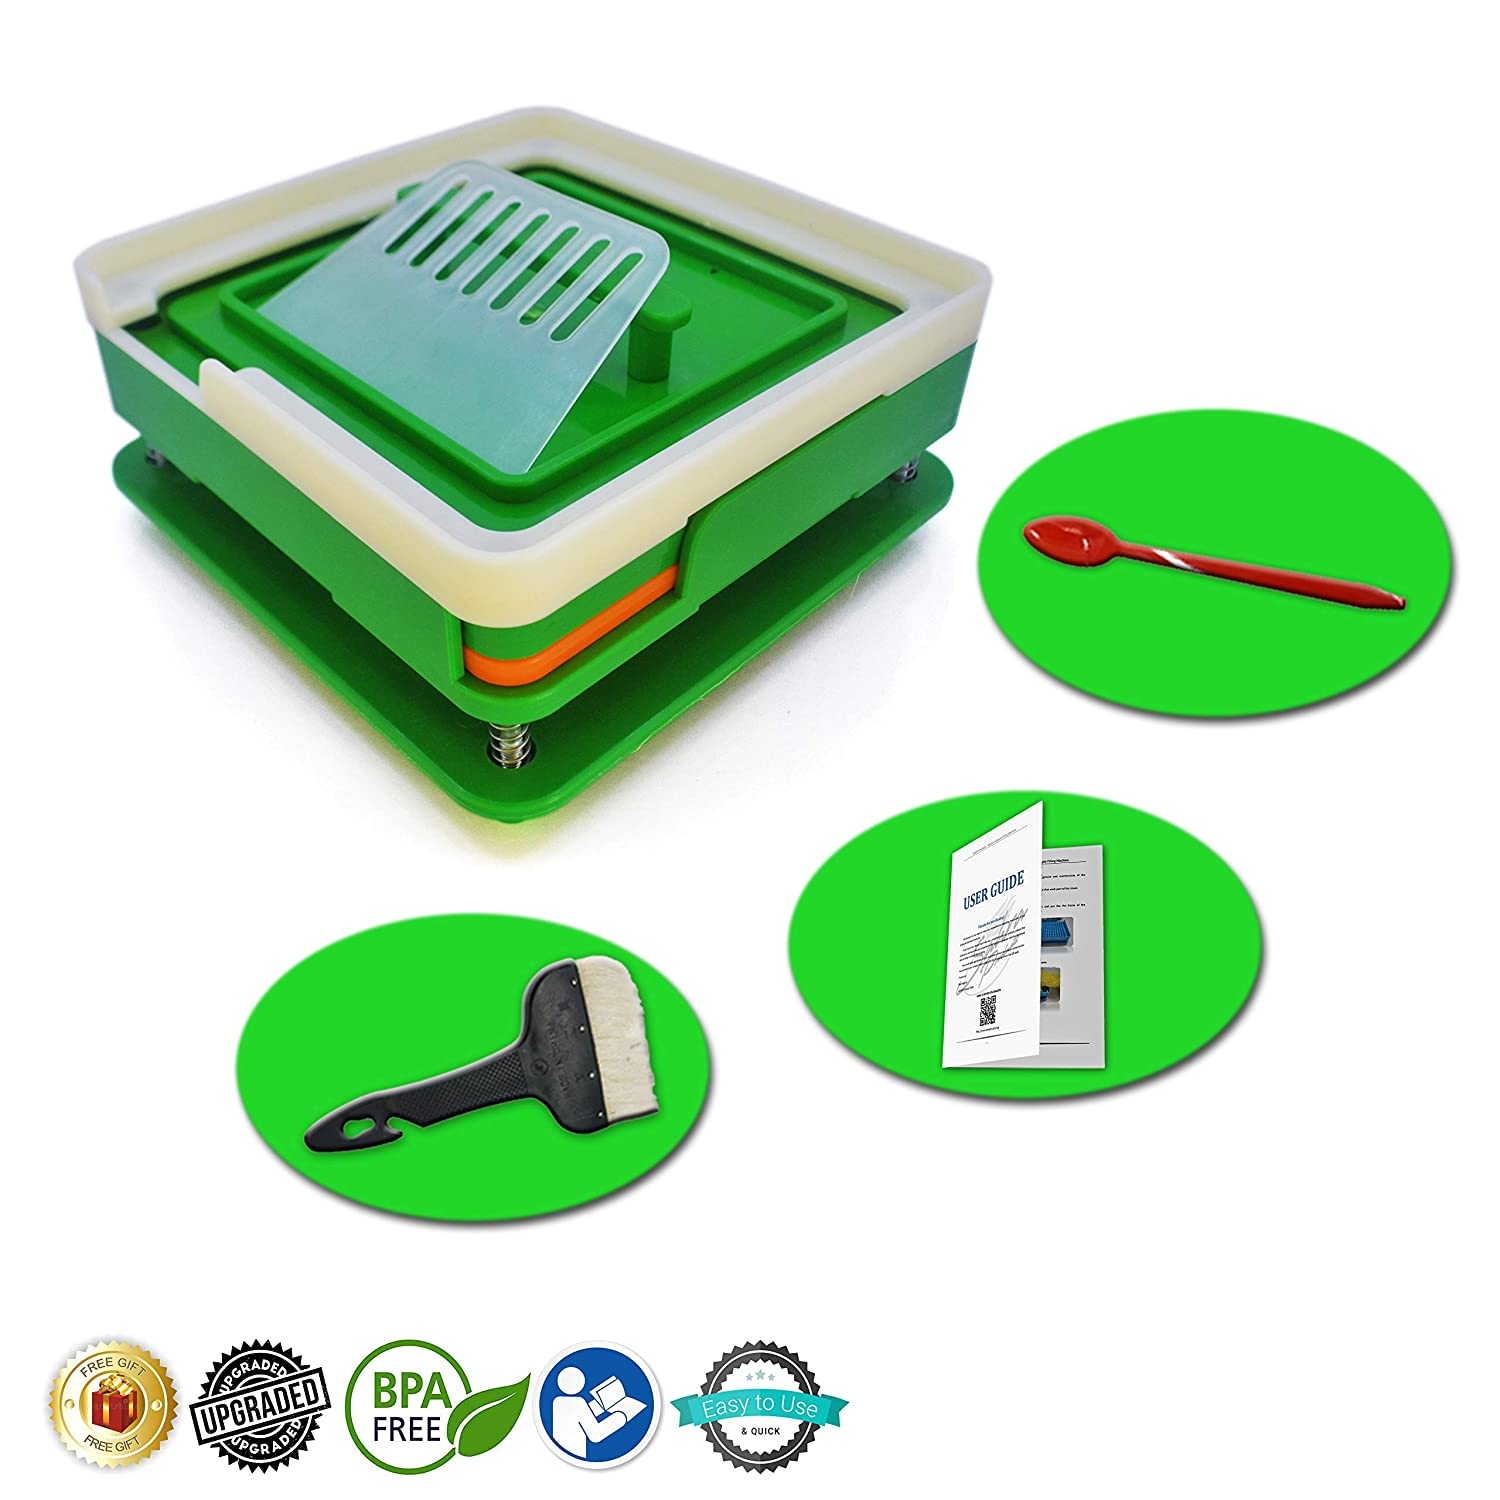 Amazon.com: Capsule Filling Machine   #00 Size 100 Holes   FREE LAB SPOON    FREE CLEANING BRUSH   With Detailed Use Instructions   Holding Tray    Capsule ...